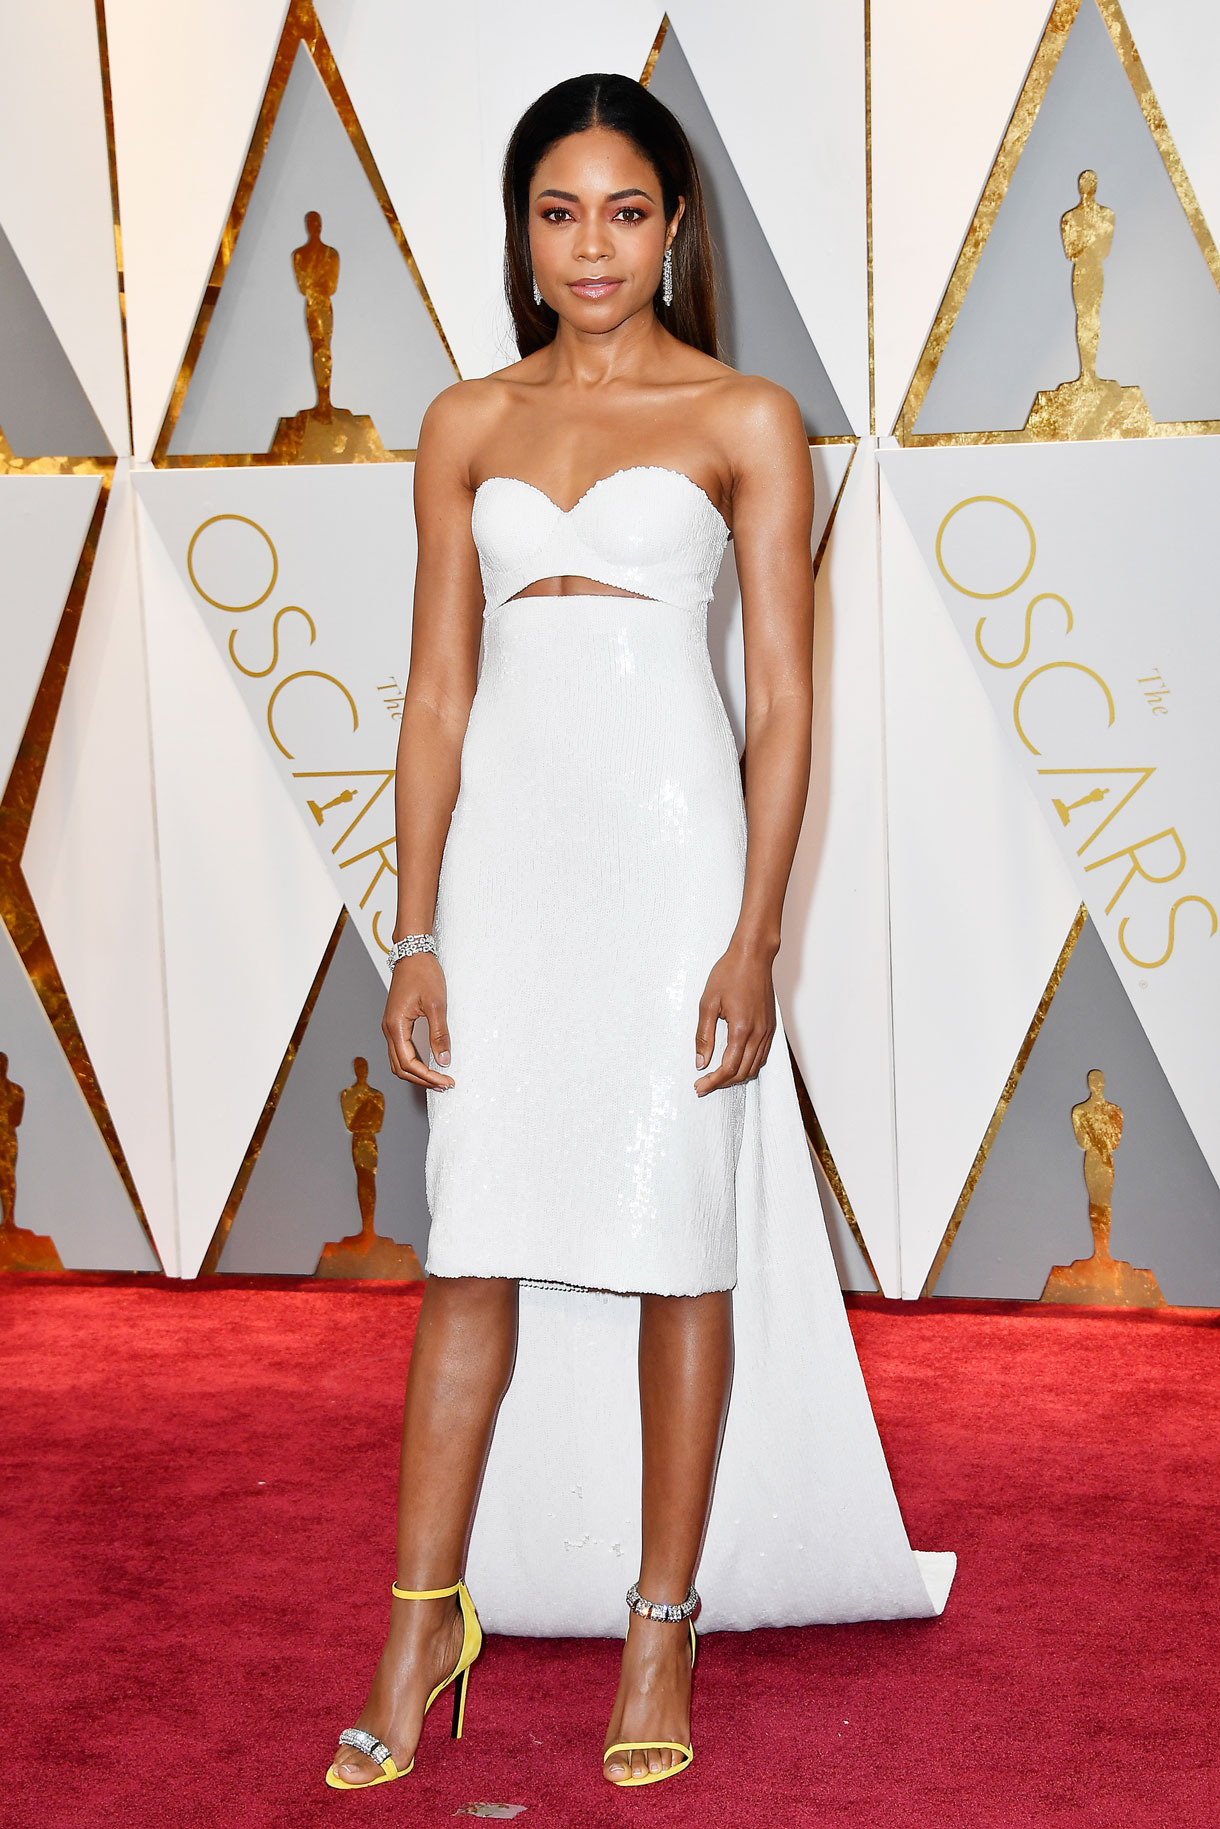 Oscar Red Carpet 2017: Best Dressed Celebrities And Trends